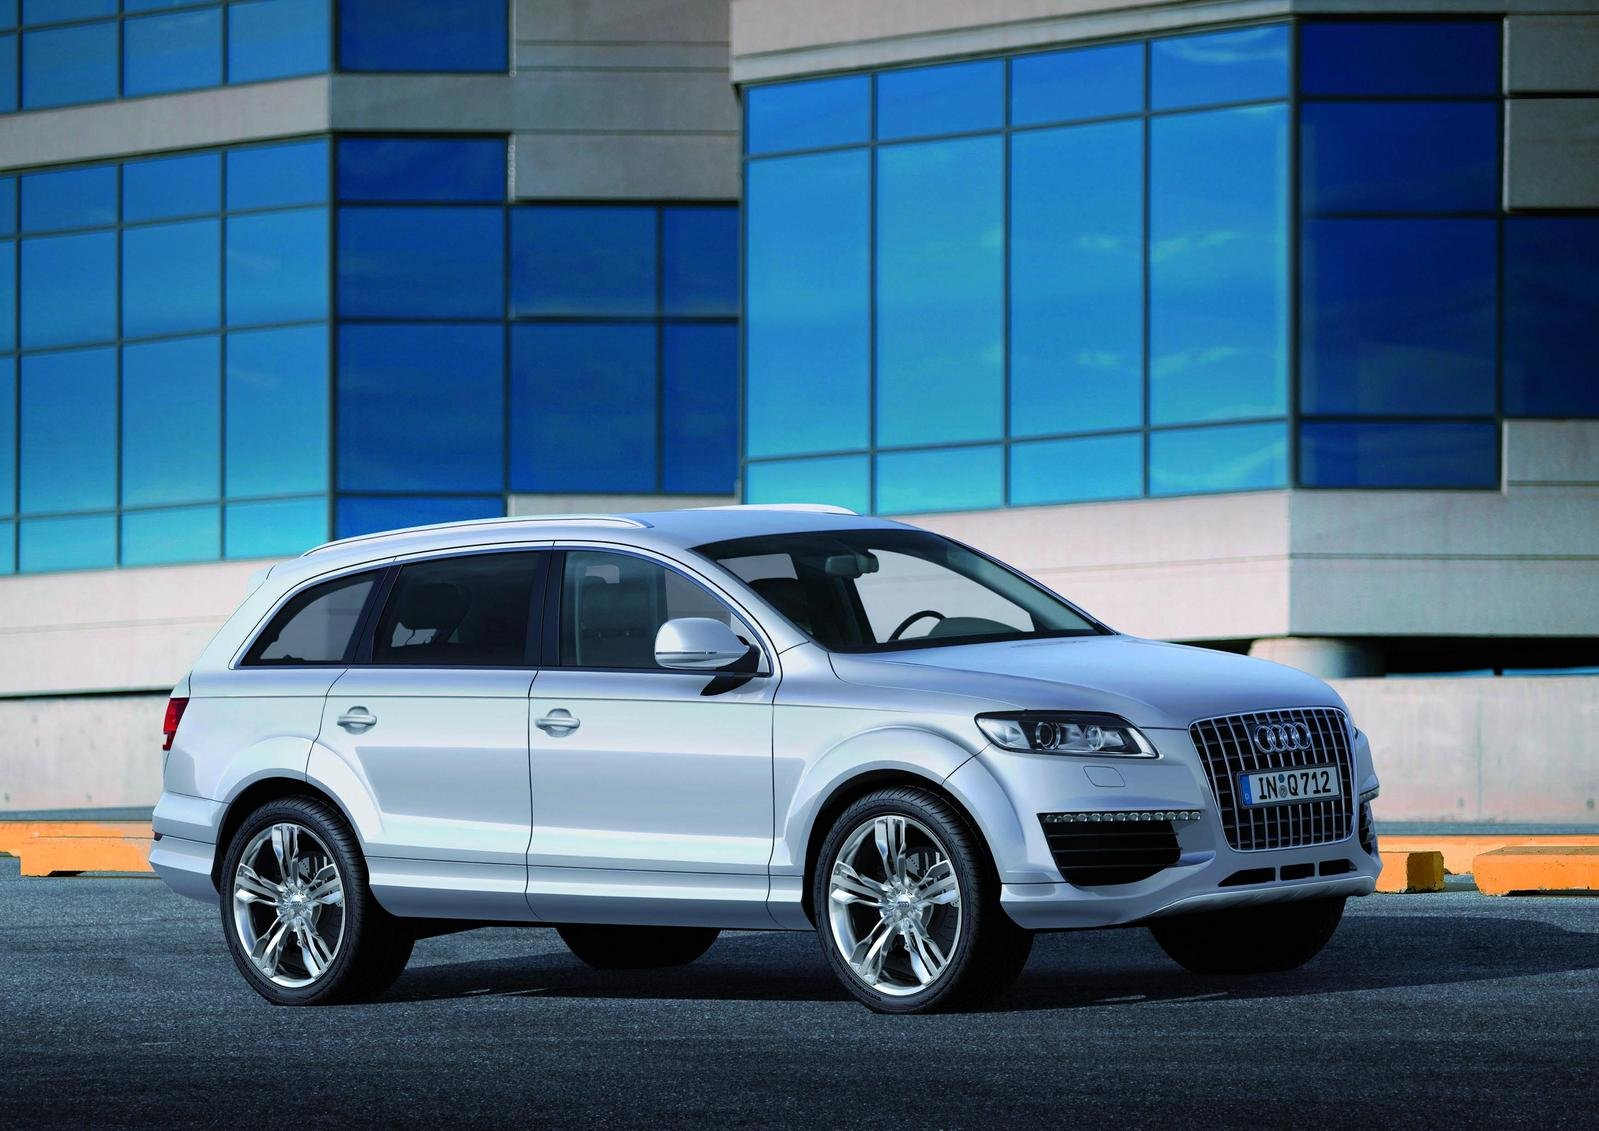 2007 audi q7 v12 tdi picture 101177 car review top speed. Black Bedroom Furniture Sets. Home Design Ideas